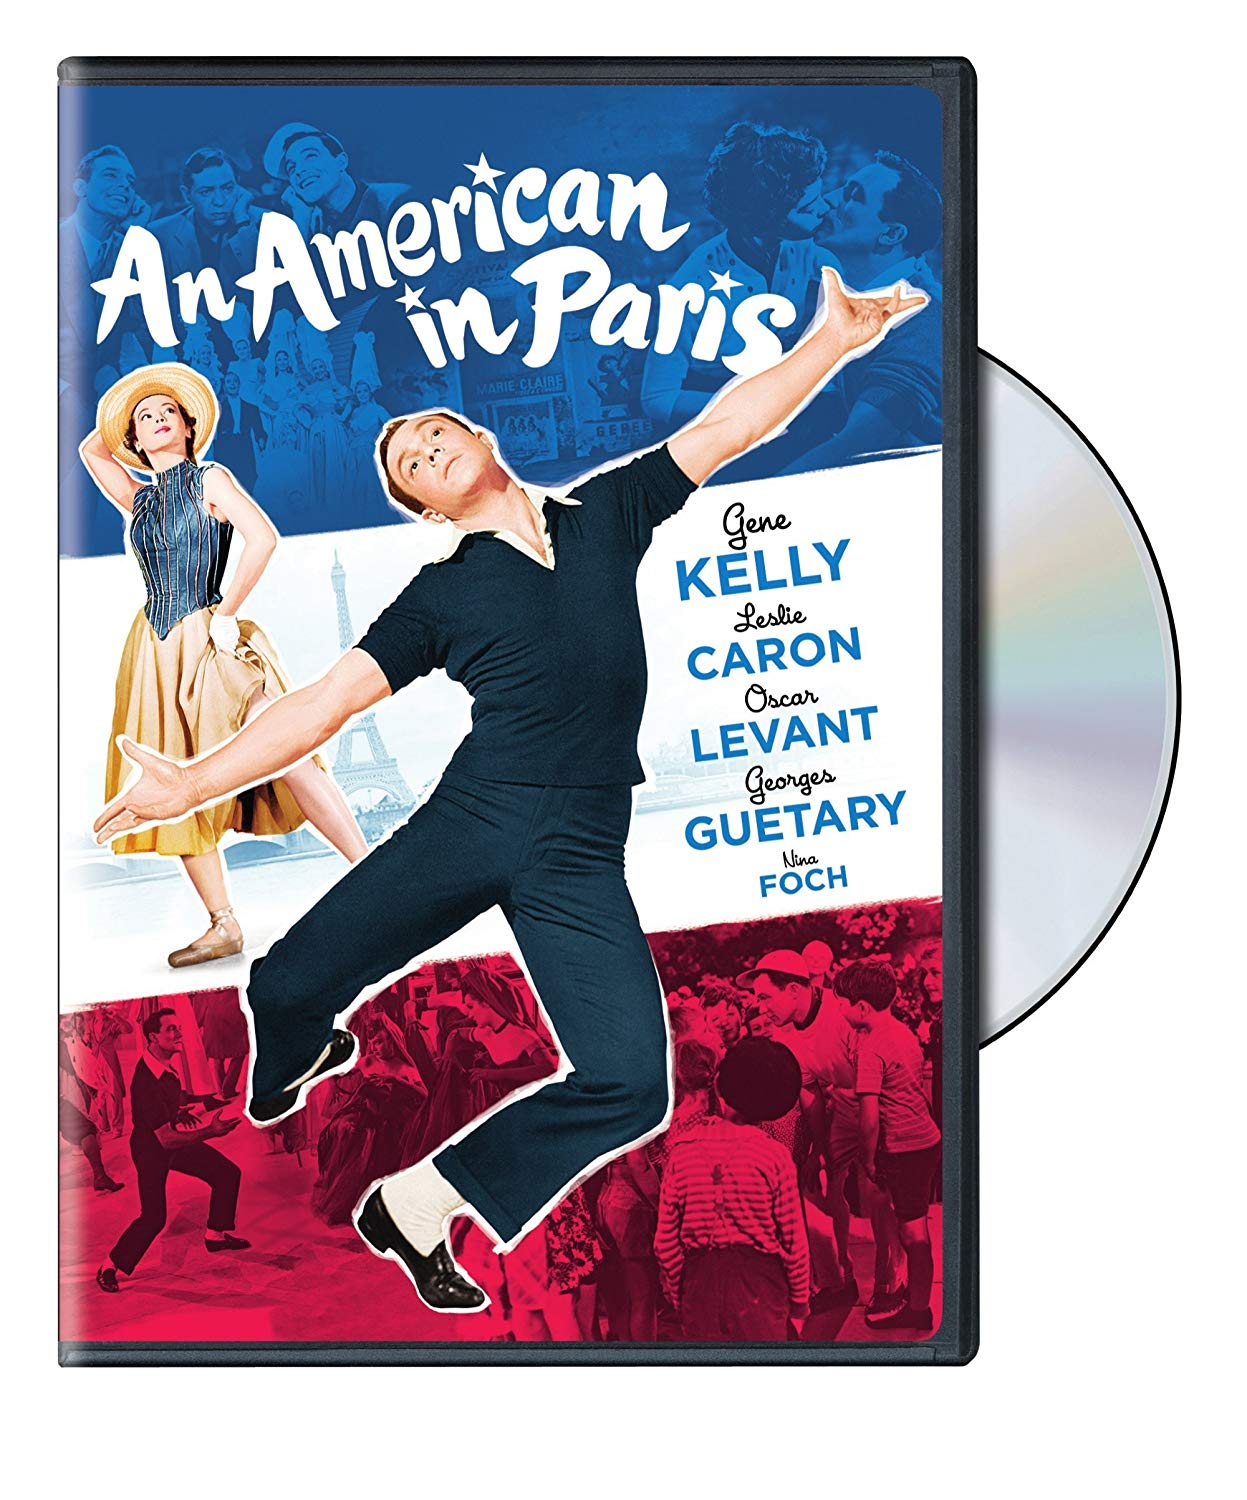 An American in Paris (1951), starring Gene Kelly, Leslie Caron, Oscar Levant, directed by Vincente Minelli